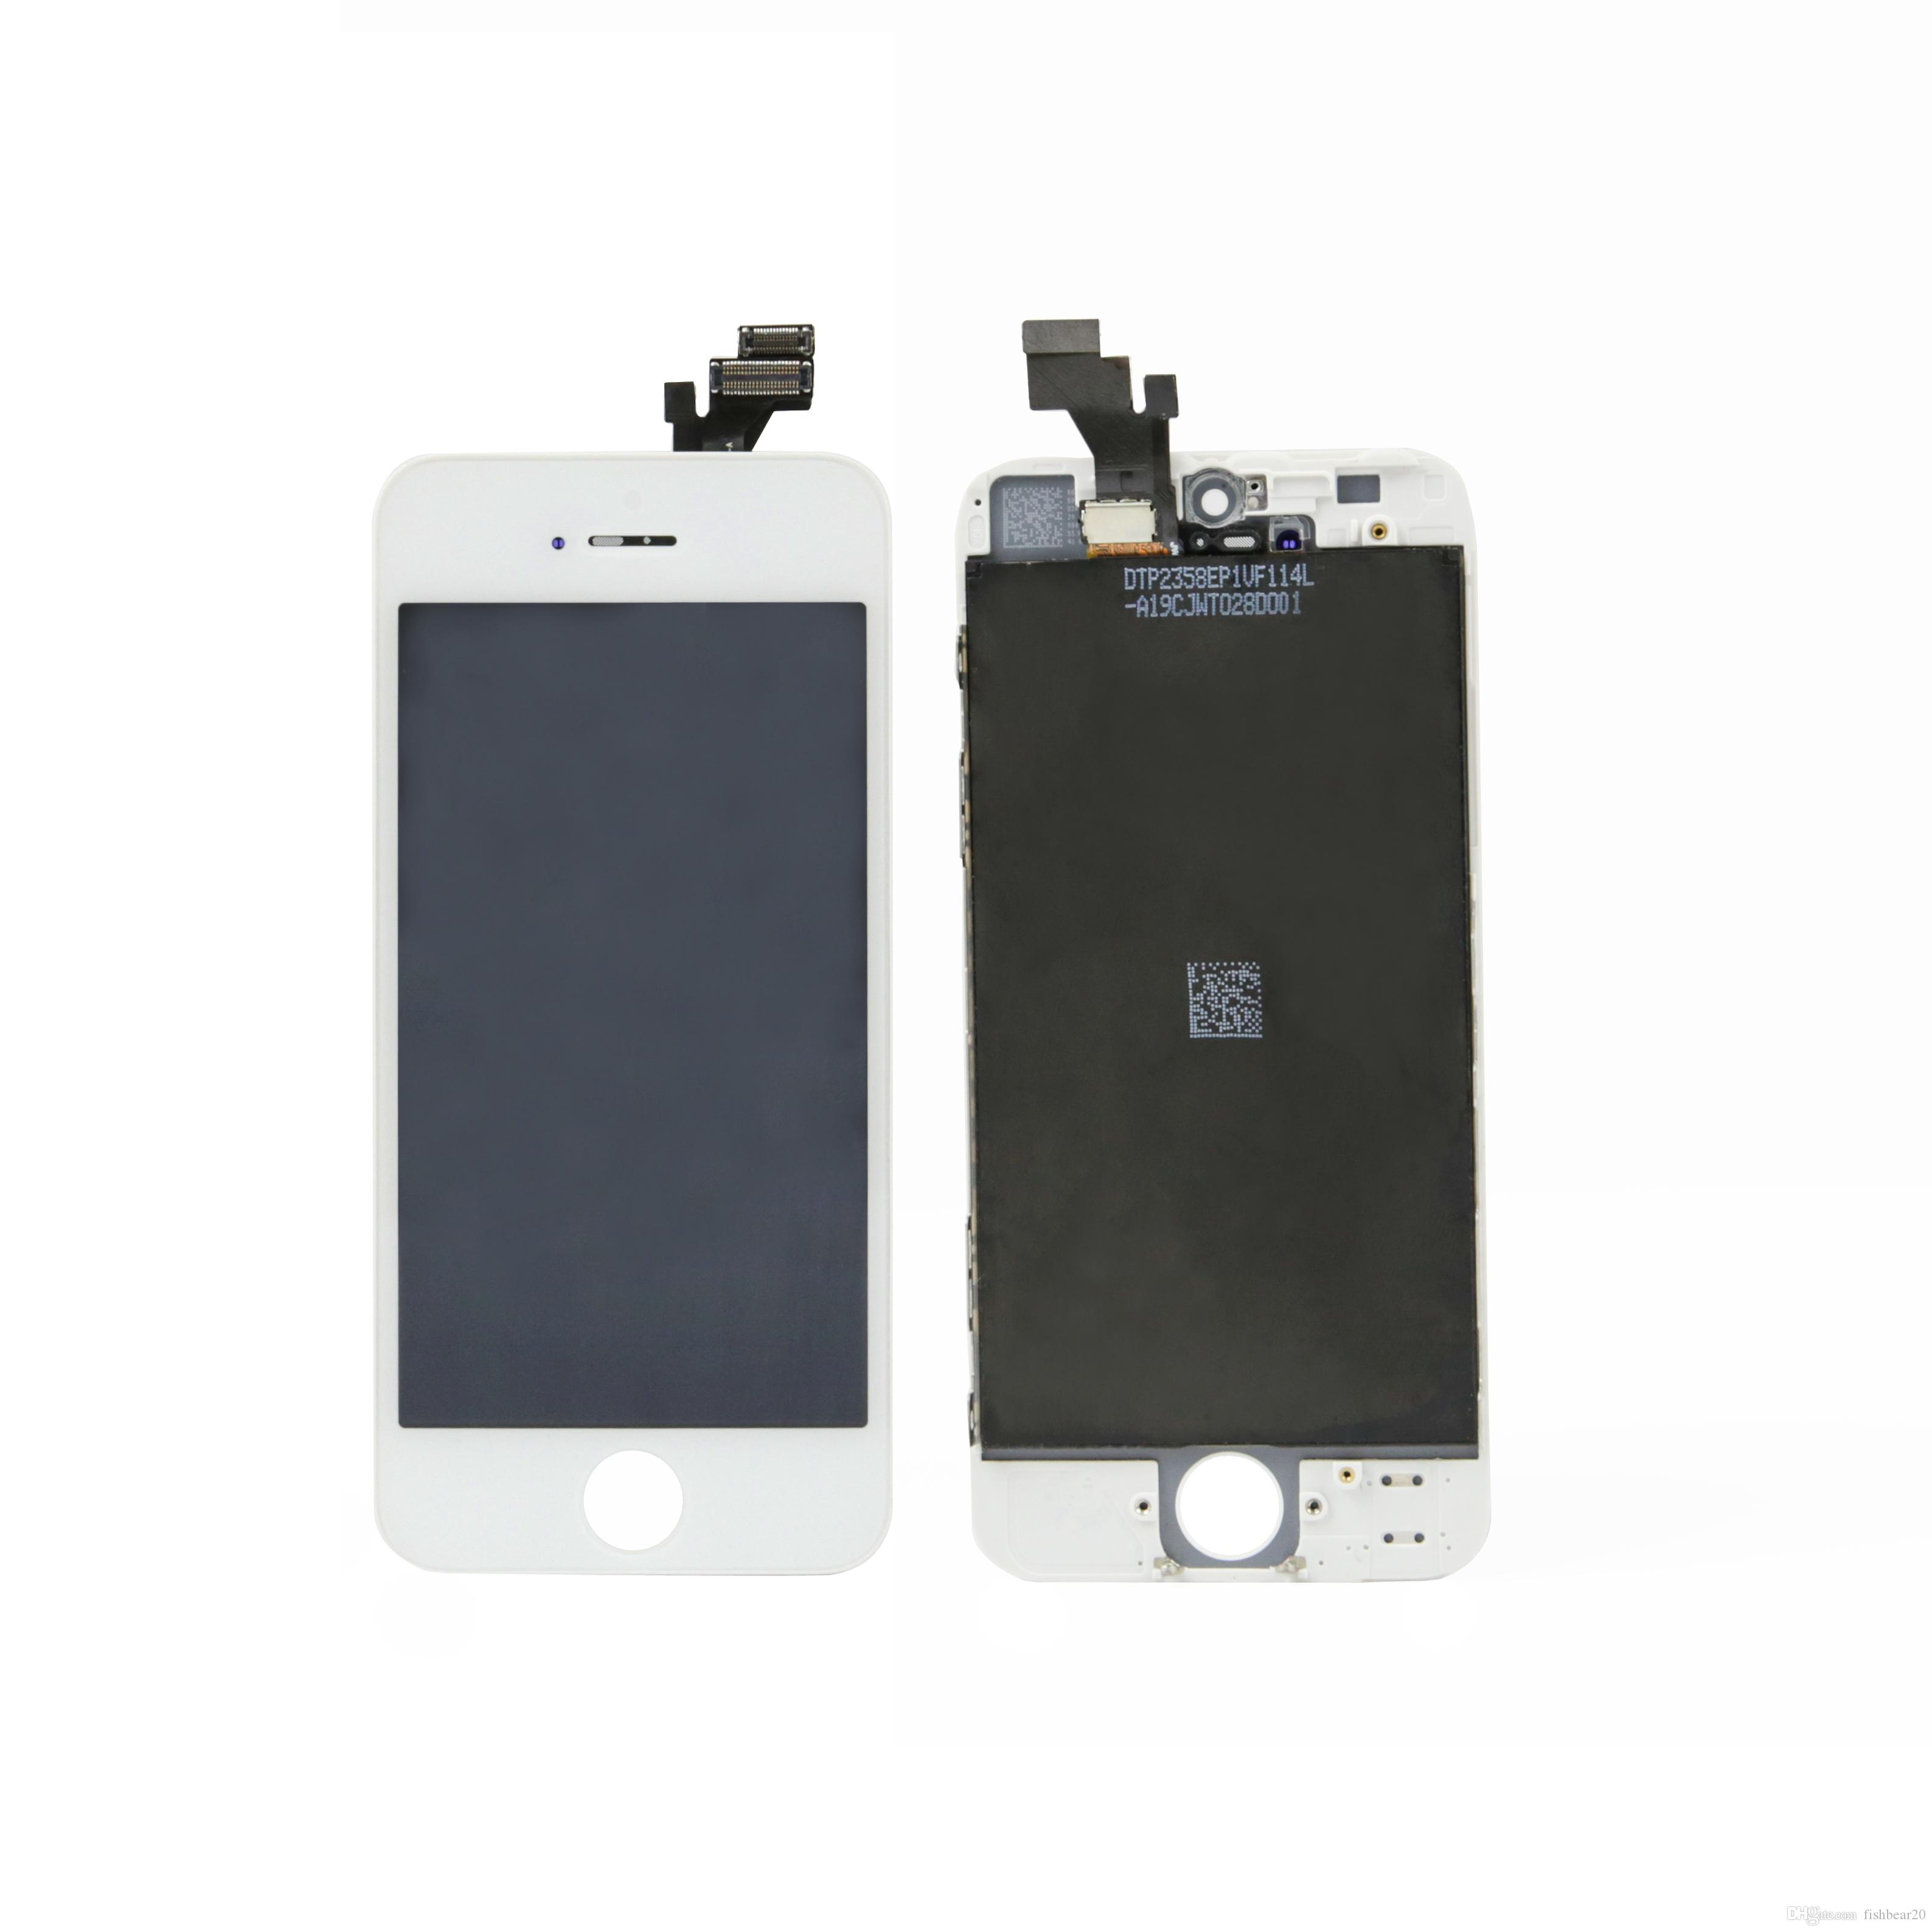 10 pcs Per Box LCD Screen For iPhone 5 5C 5S 5SE LCD Display Touch Screen Digitizer Assembly replacement